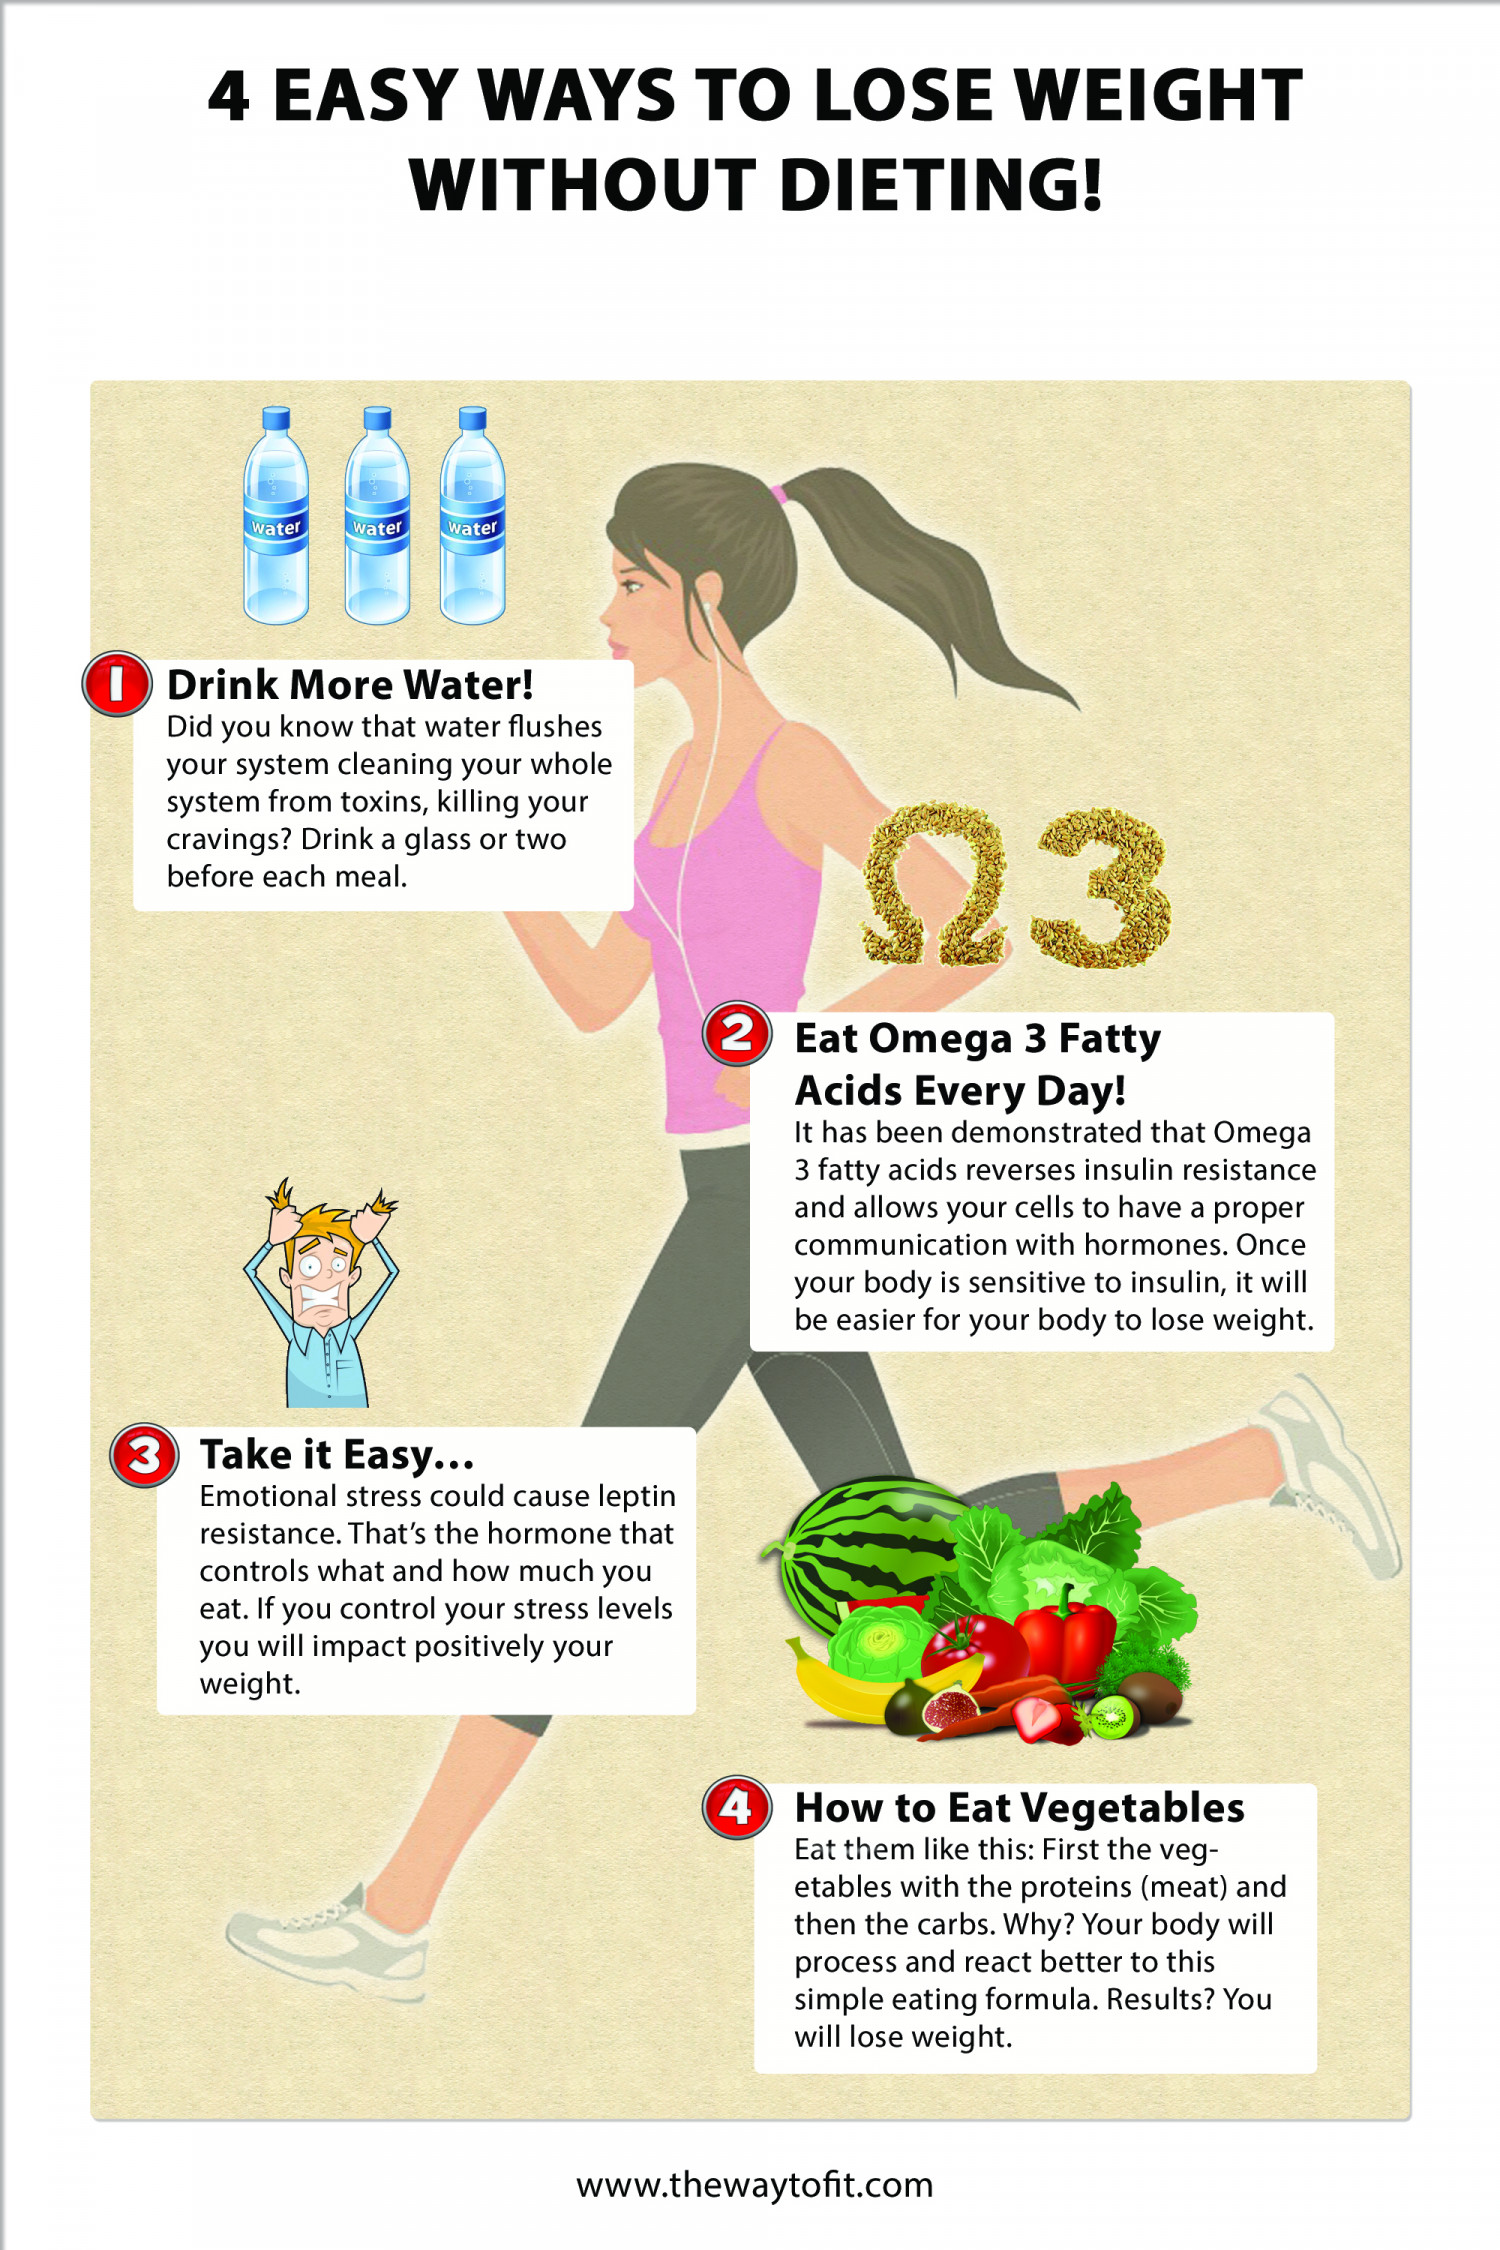 4 Easy Ways To Lose Weight Without Dieting! Infographic